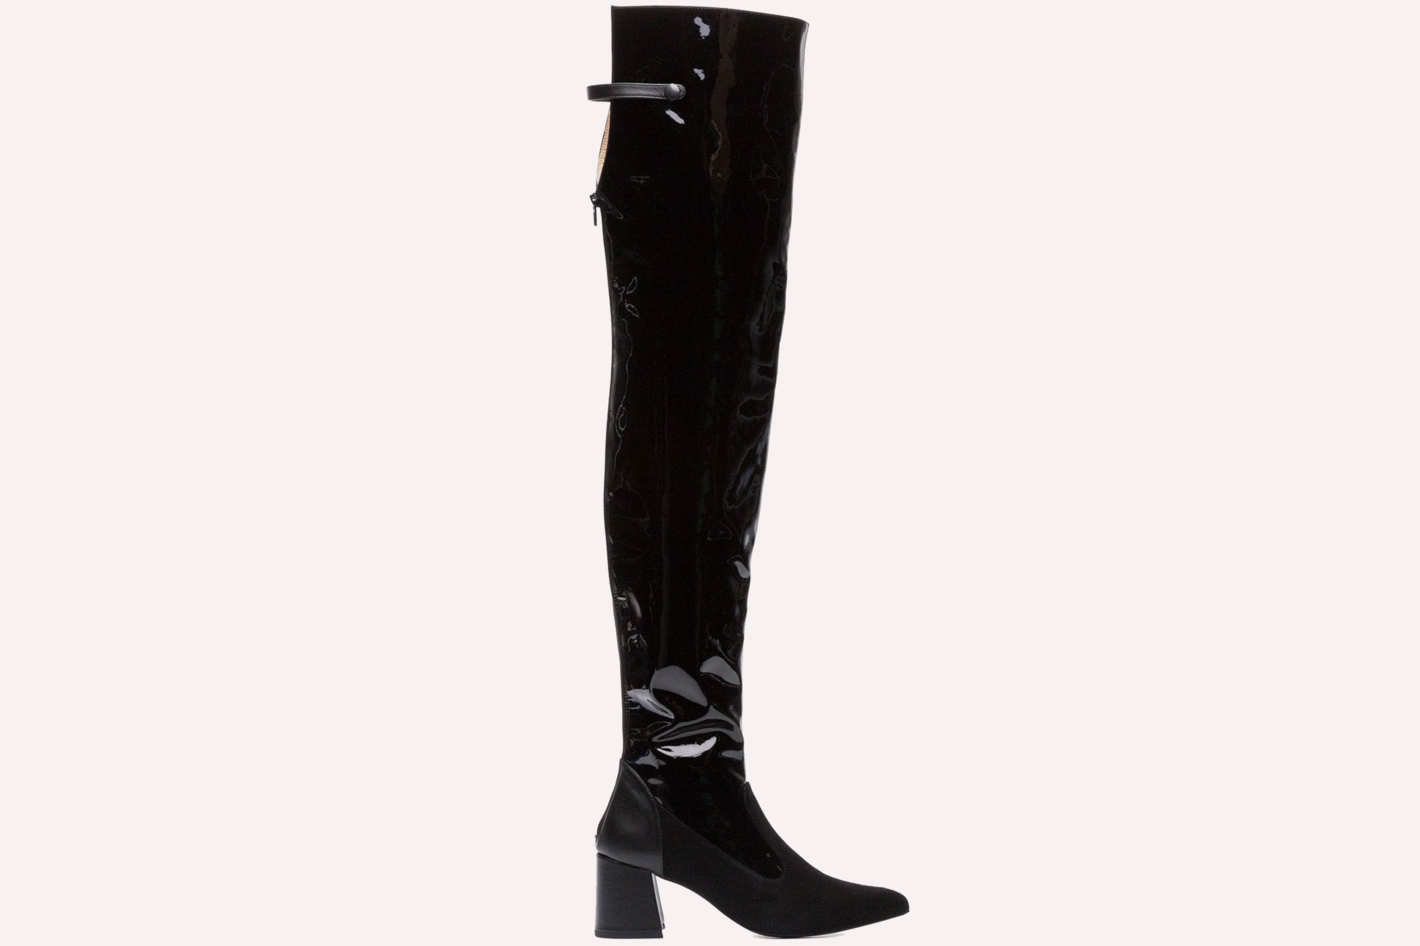 Kalda Black Eyja 80 Patent Leather Boots